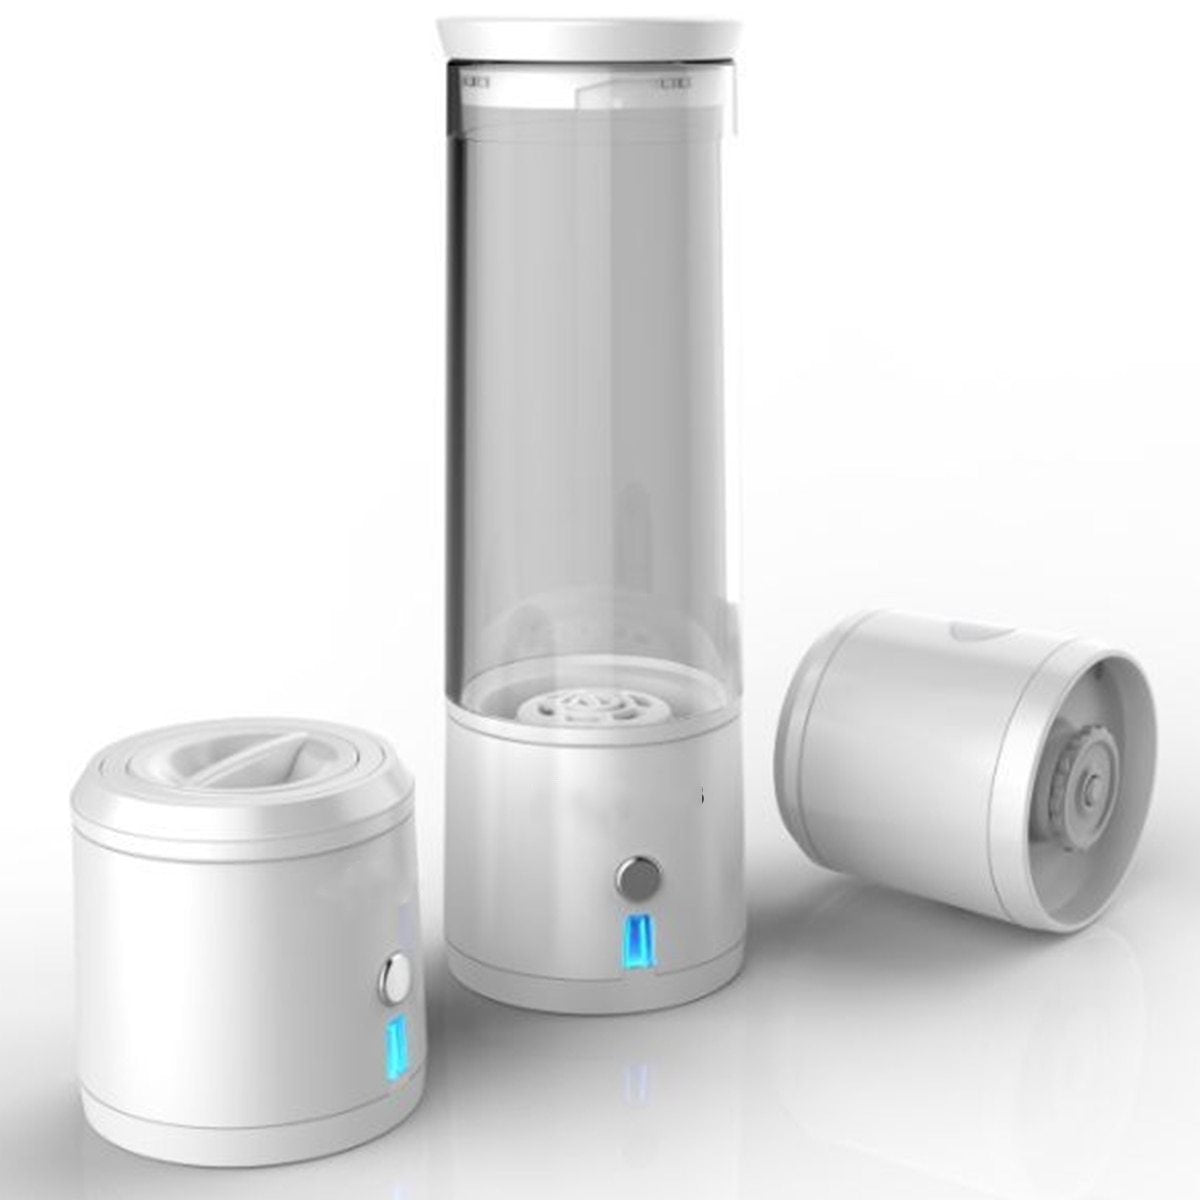 Hydrogen Water Bottle - 50% OFF